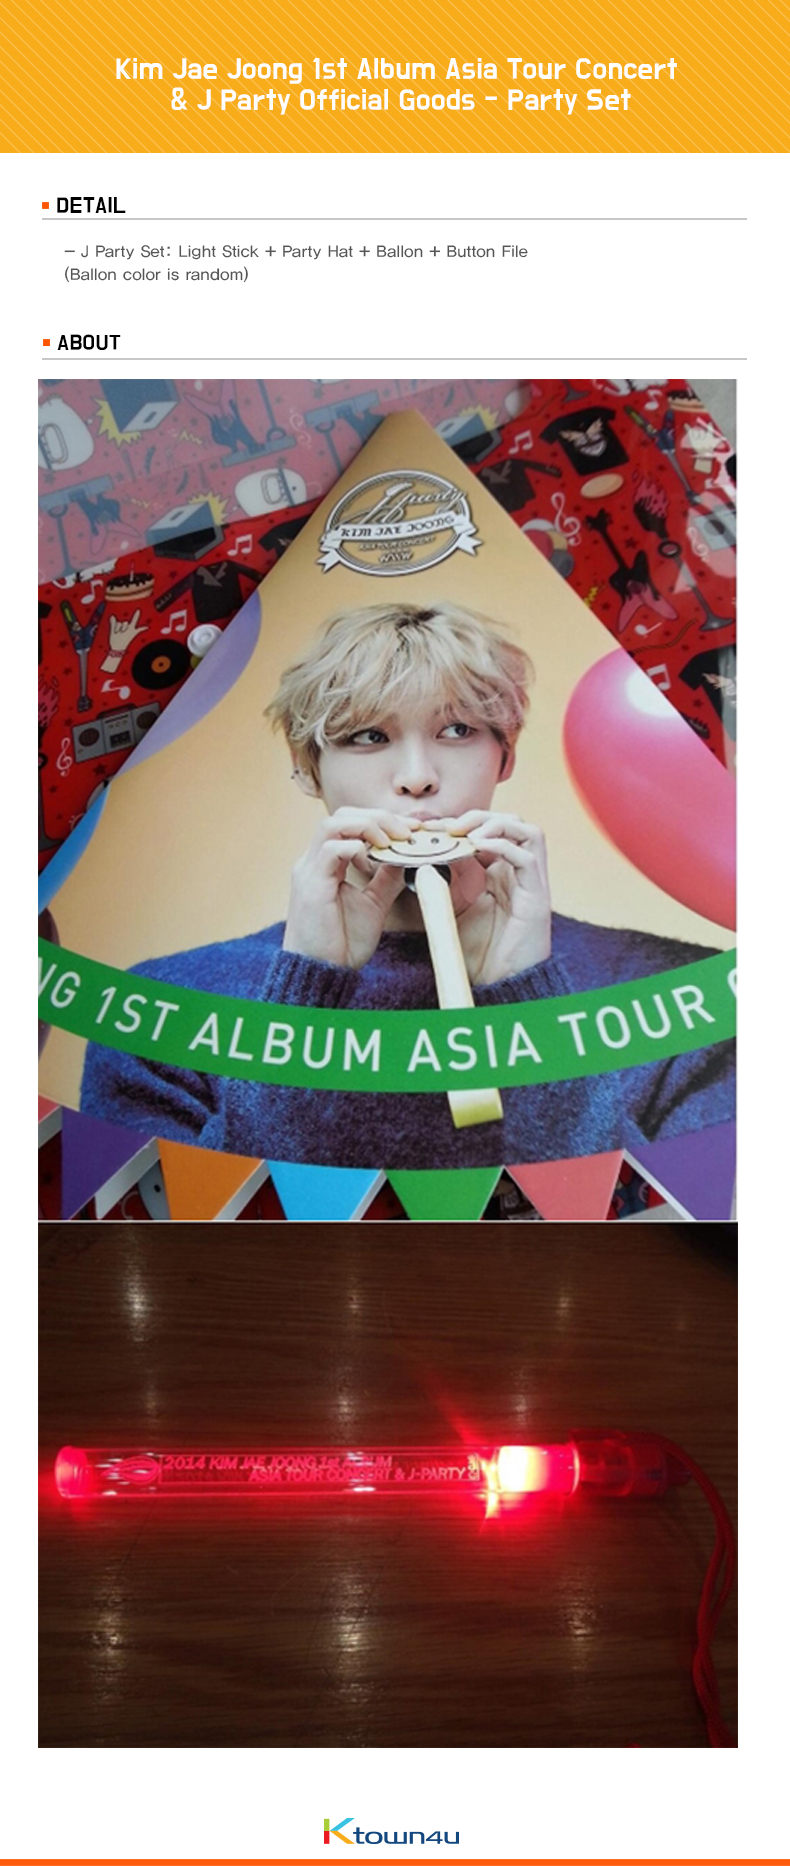 金在中 - Party Set [1st Album Asia Tour Concert & J Party]